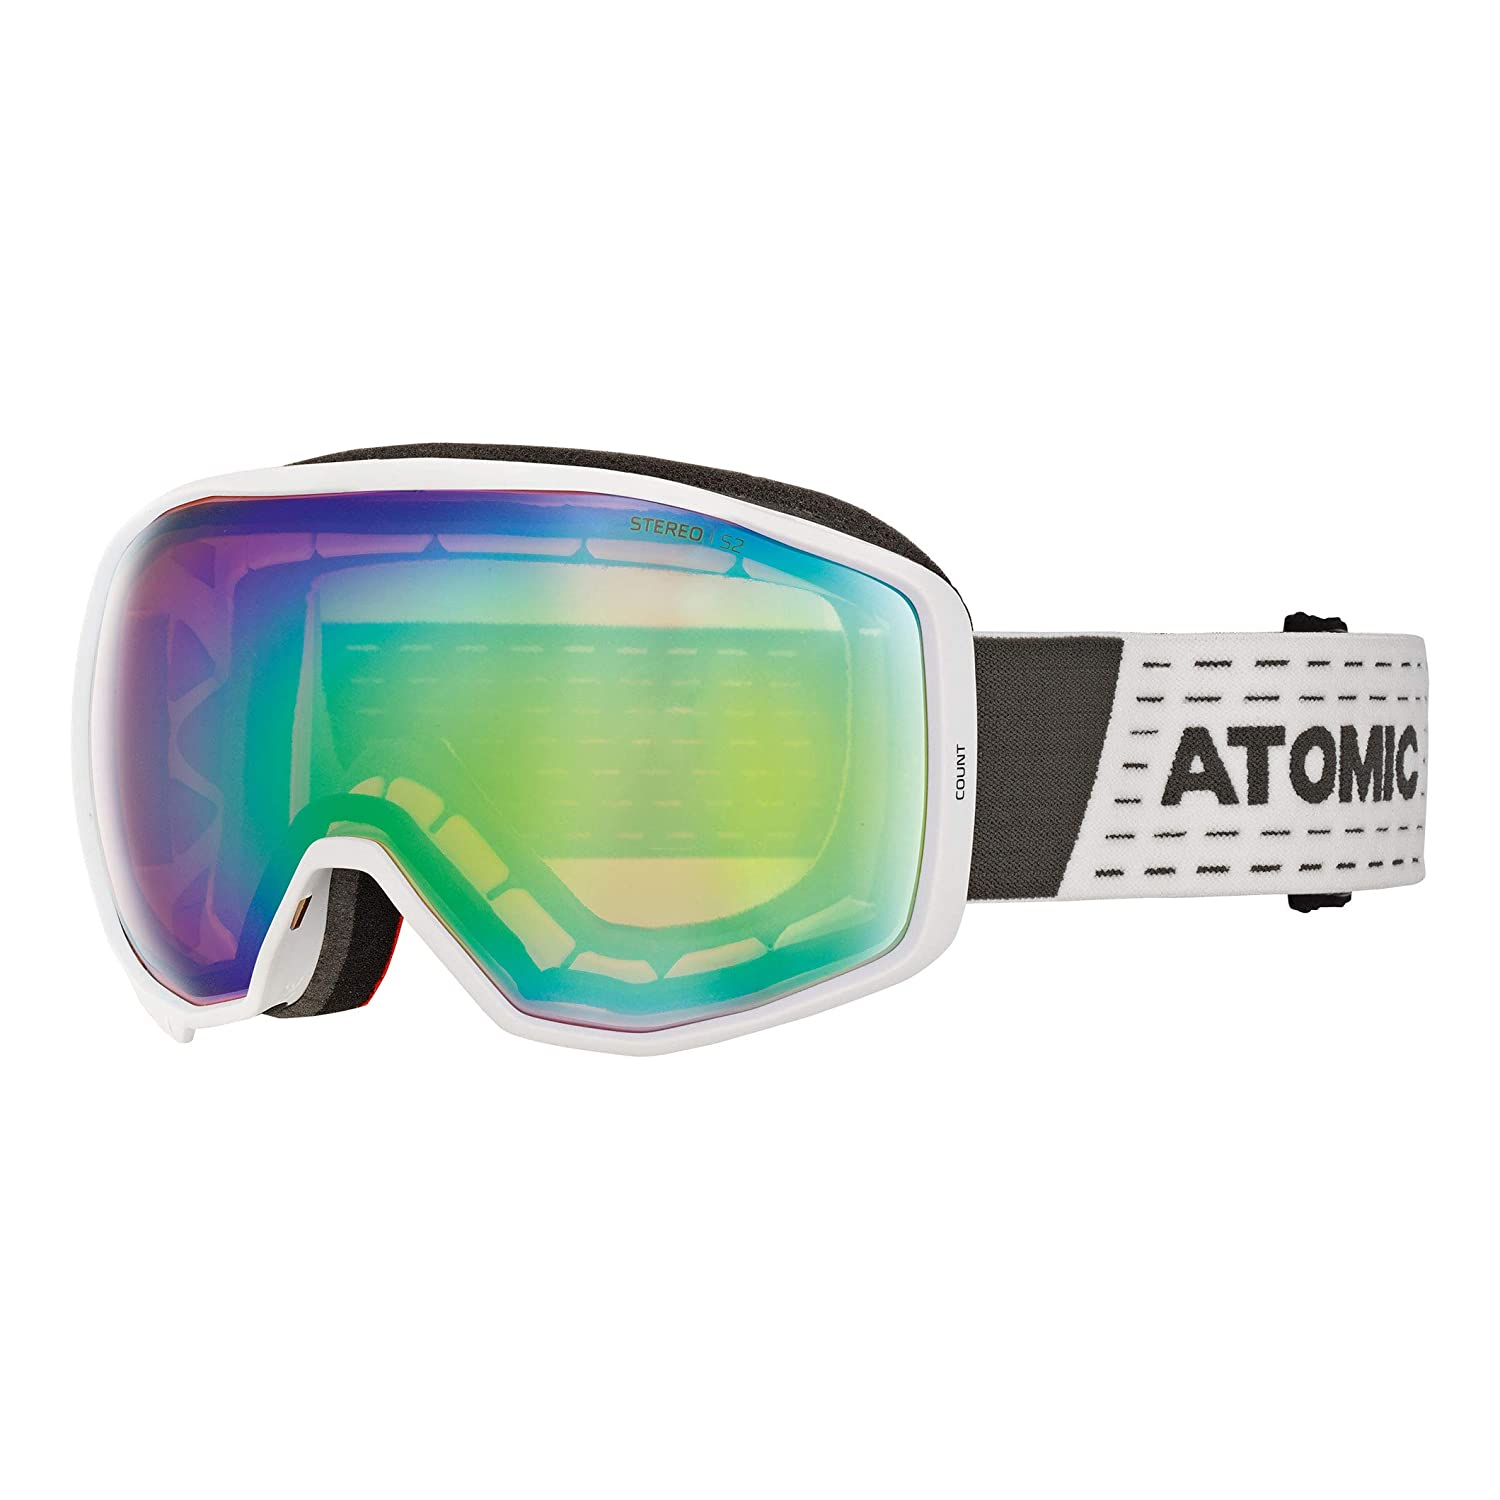 Technology for Moderate Brightness ATOMIC Mountain Ski Mask Count 360 Degree HD Dual Spherical Screen FDL